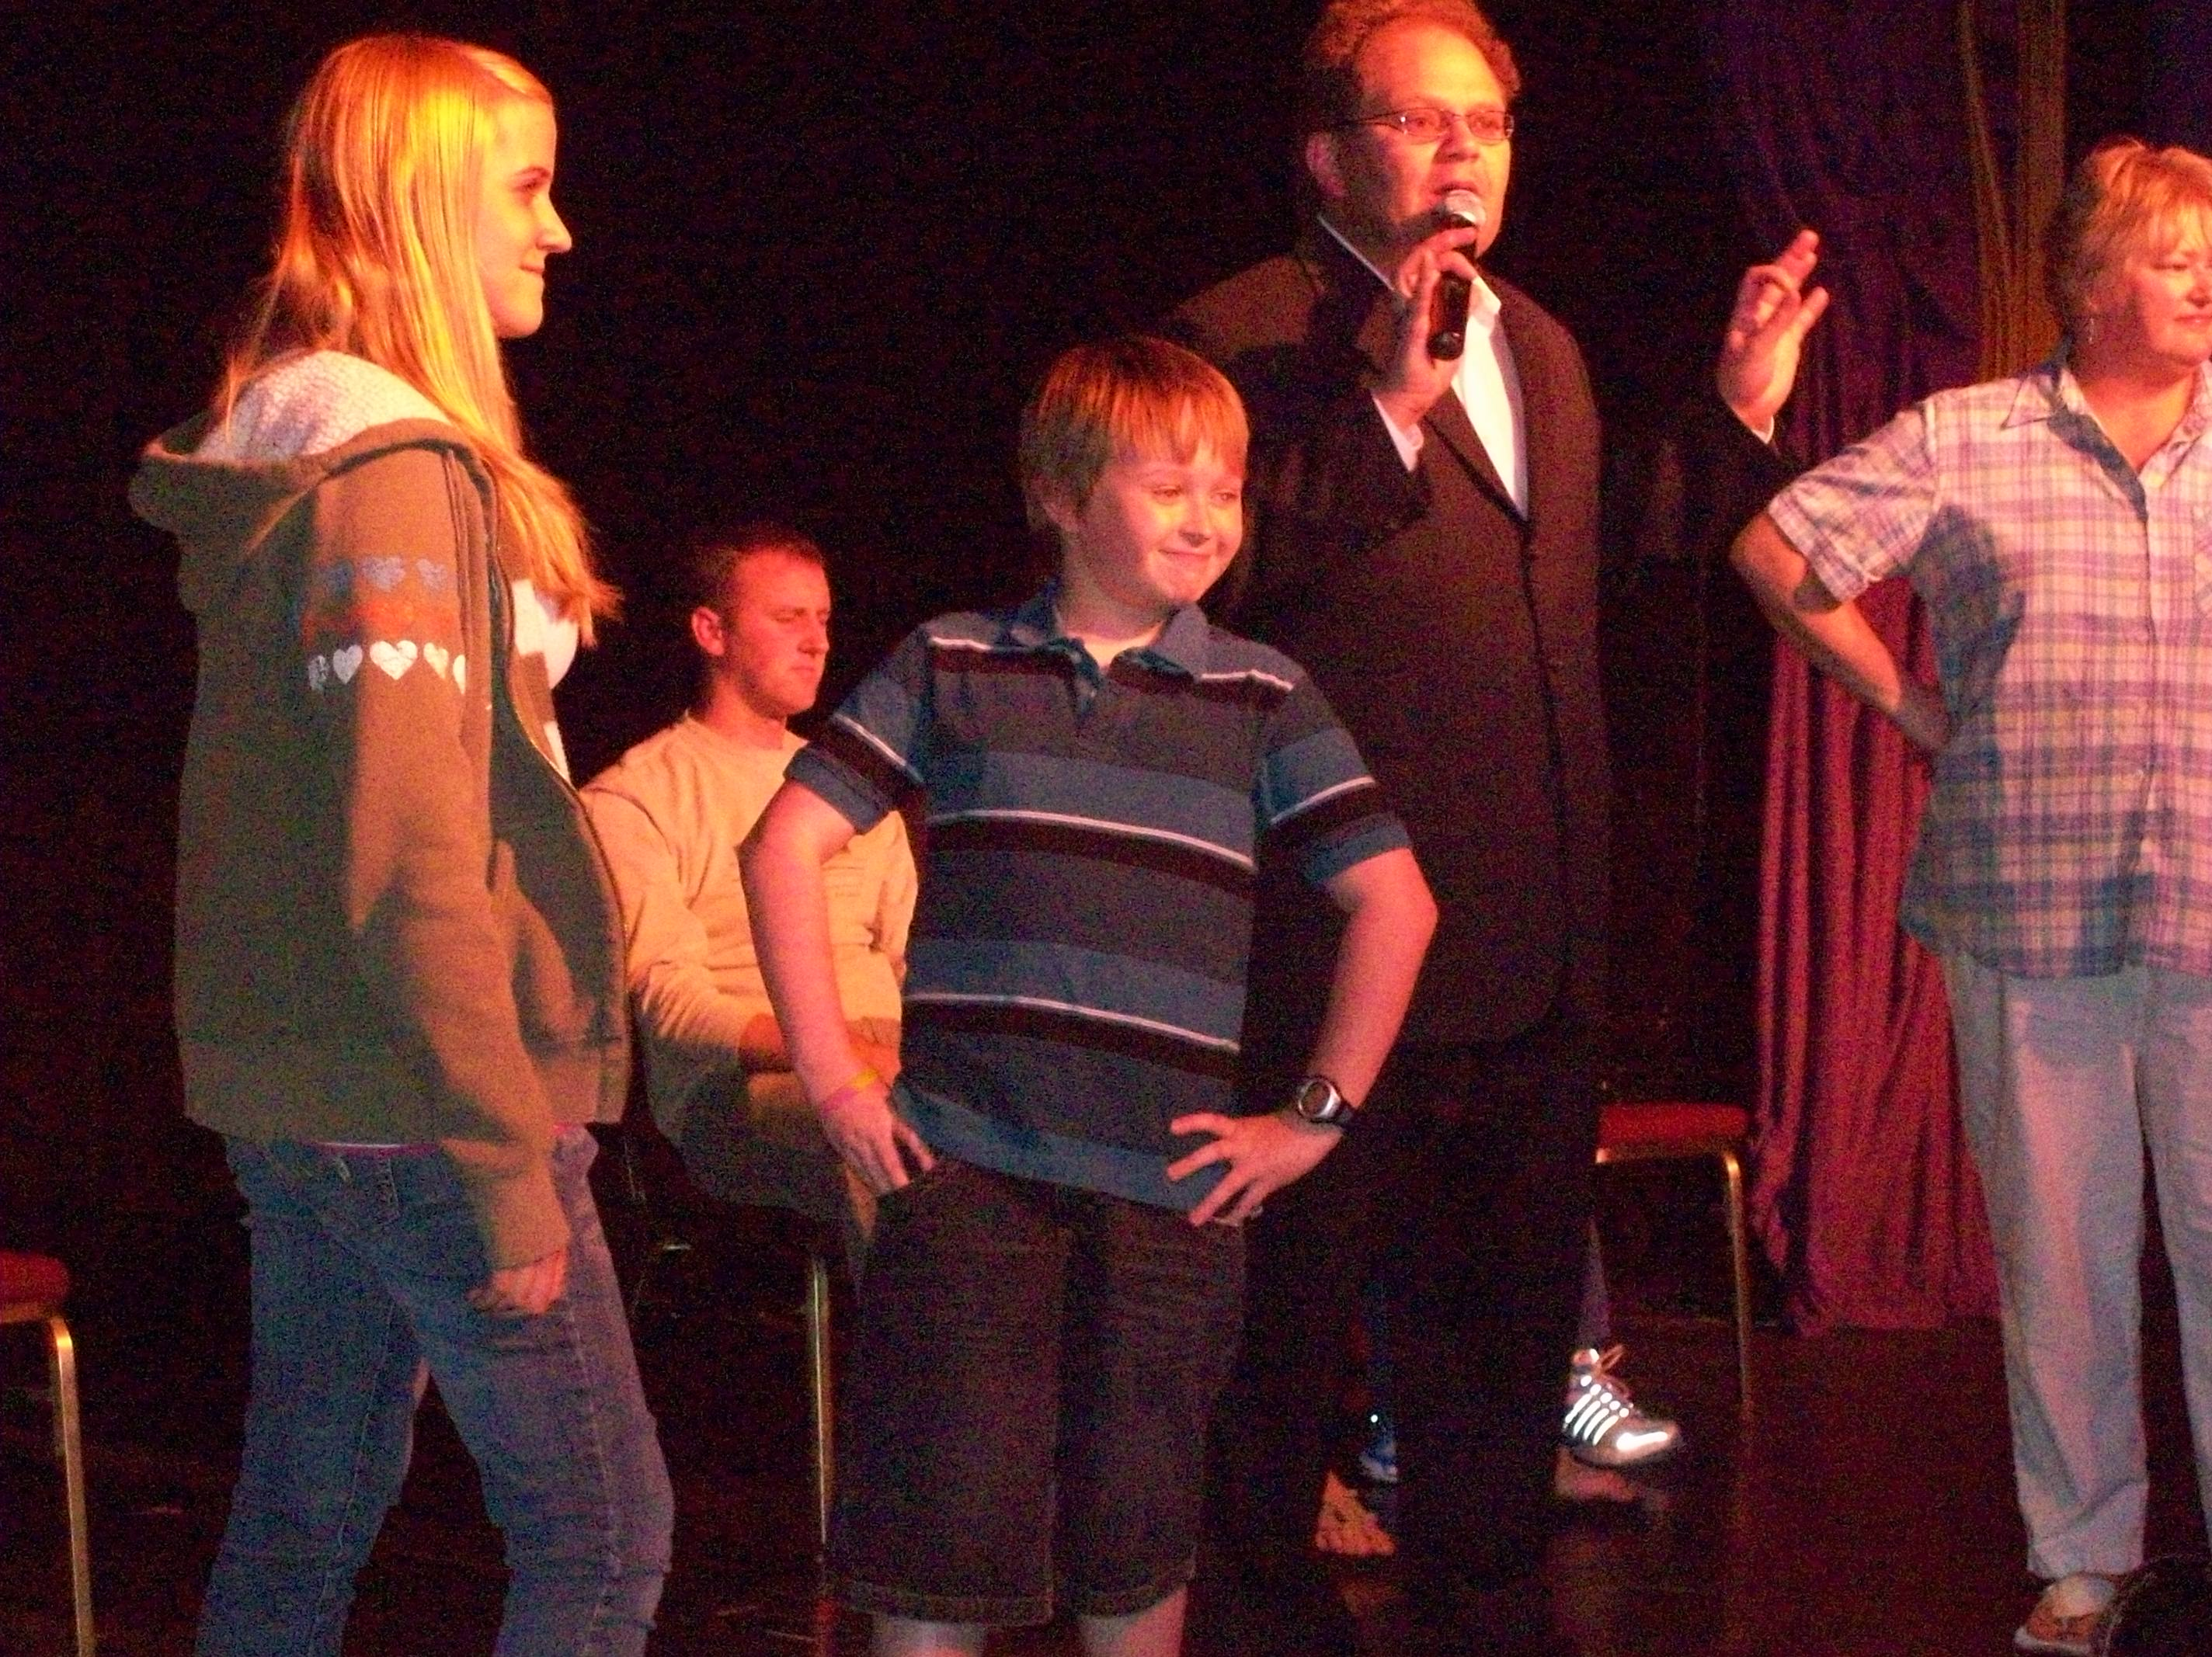 kids and families hypnotized in the Reno show Chris Cady's GEt Hypnotized comedy hypnosis show now playing in Reno Nevada in 2010